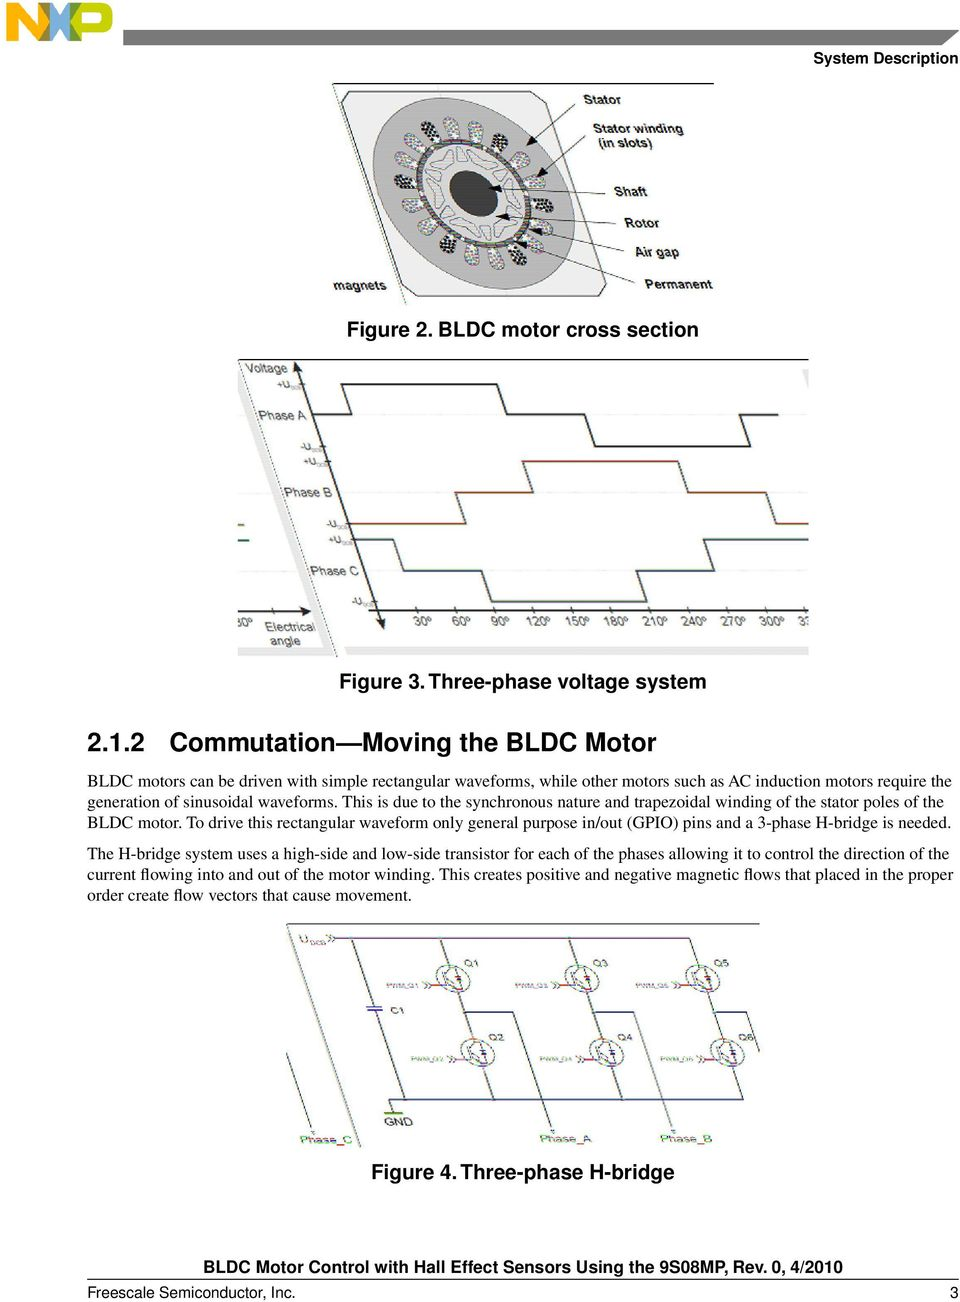 Bldc Motor Control With Hall Effect Sensors Using The 9s08mp Pdf Brushless Electric Diagram A Threephase Dc This Is Due To Synchronous Nature And Trapezoidal Winding Of Stator Poles